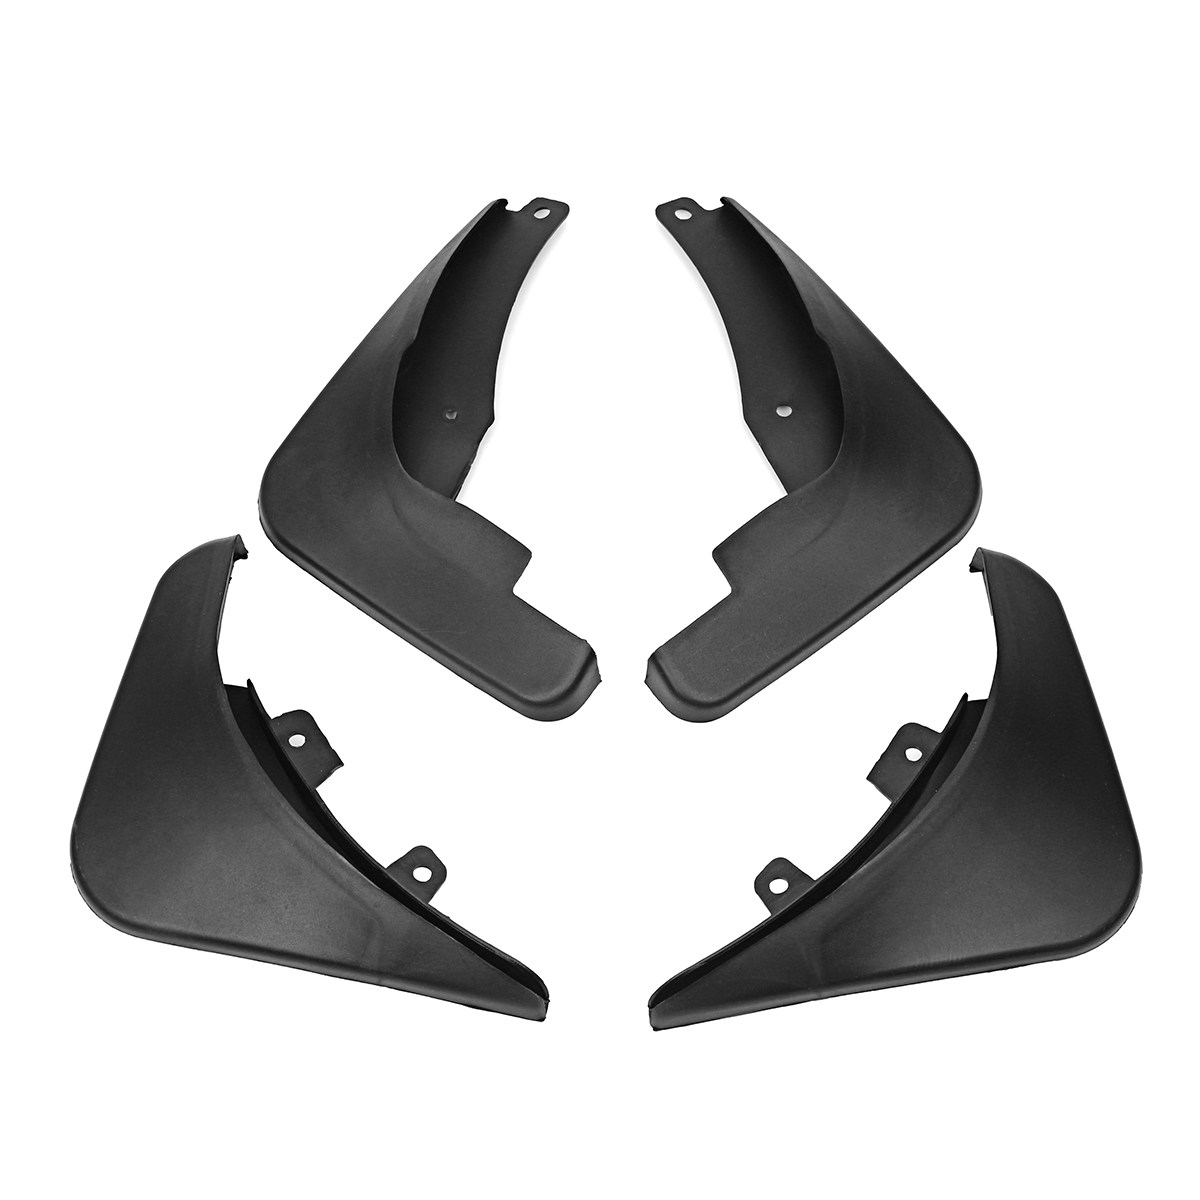 4Pcs Car Front RearMudflaps Splash Mudguards for Vauxhall Opel Astra J /Buick Verano 2010 2011 2012 2013 2014 2015 2016